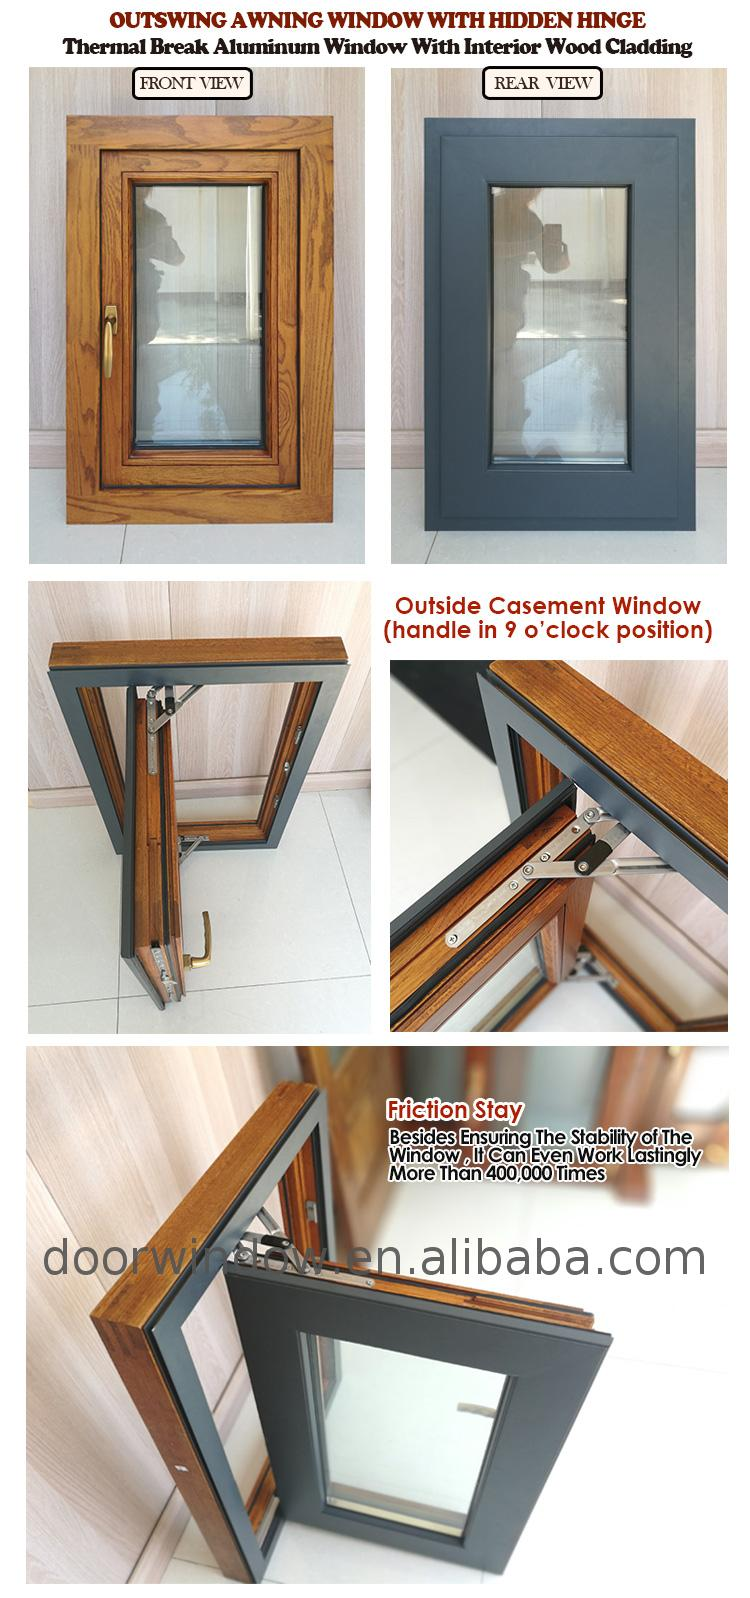 alu clad timber windows